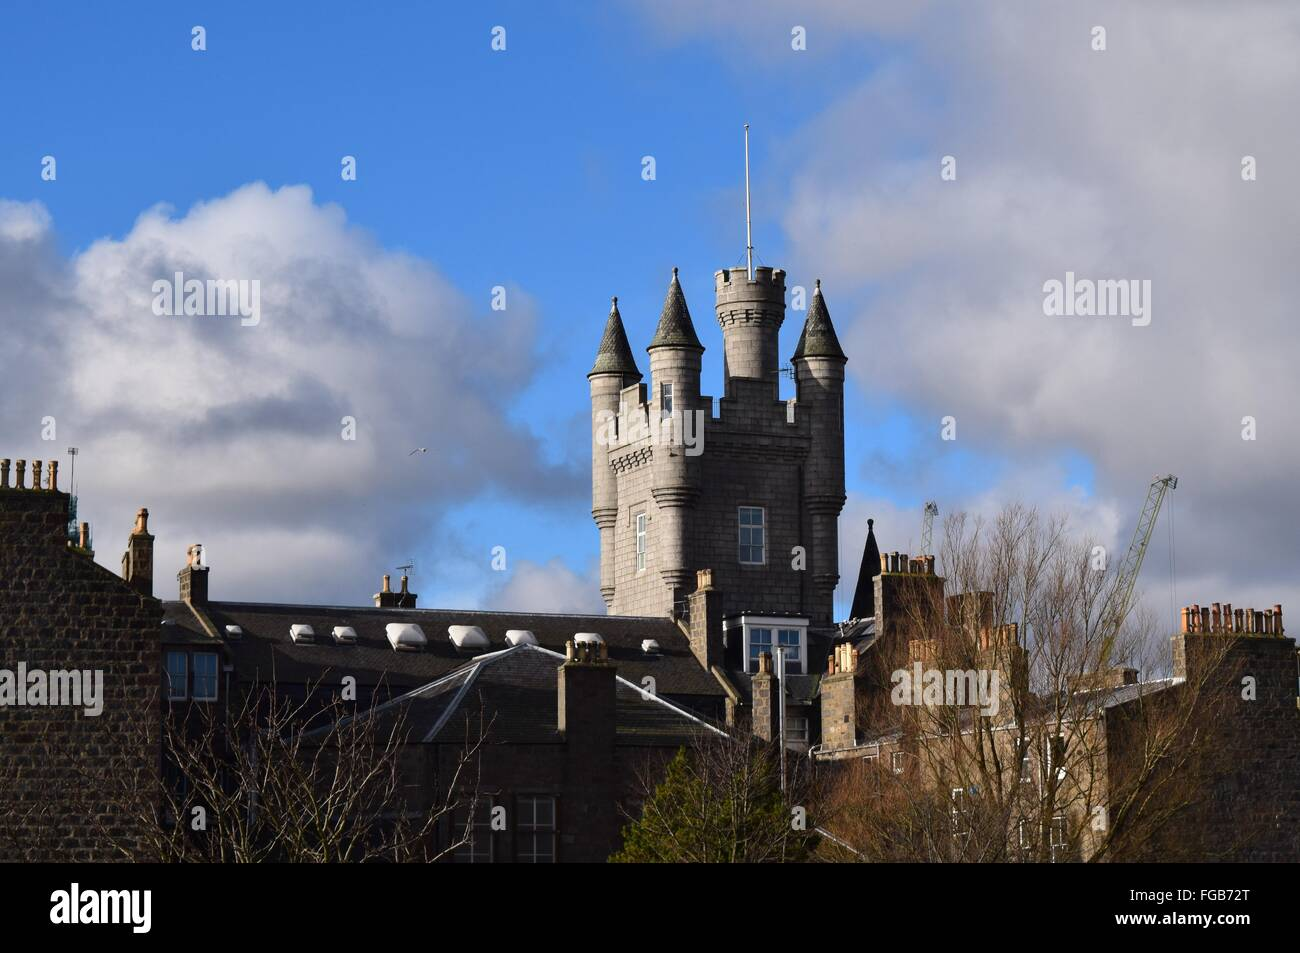 The Citadel, Aberdeen city centre - Stock Image